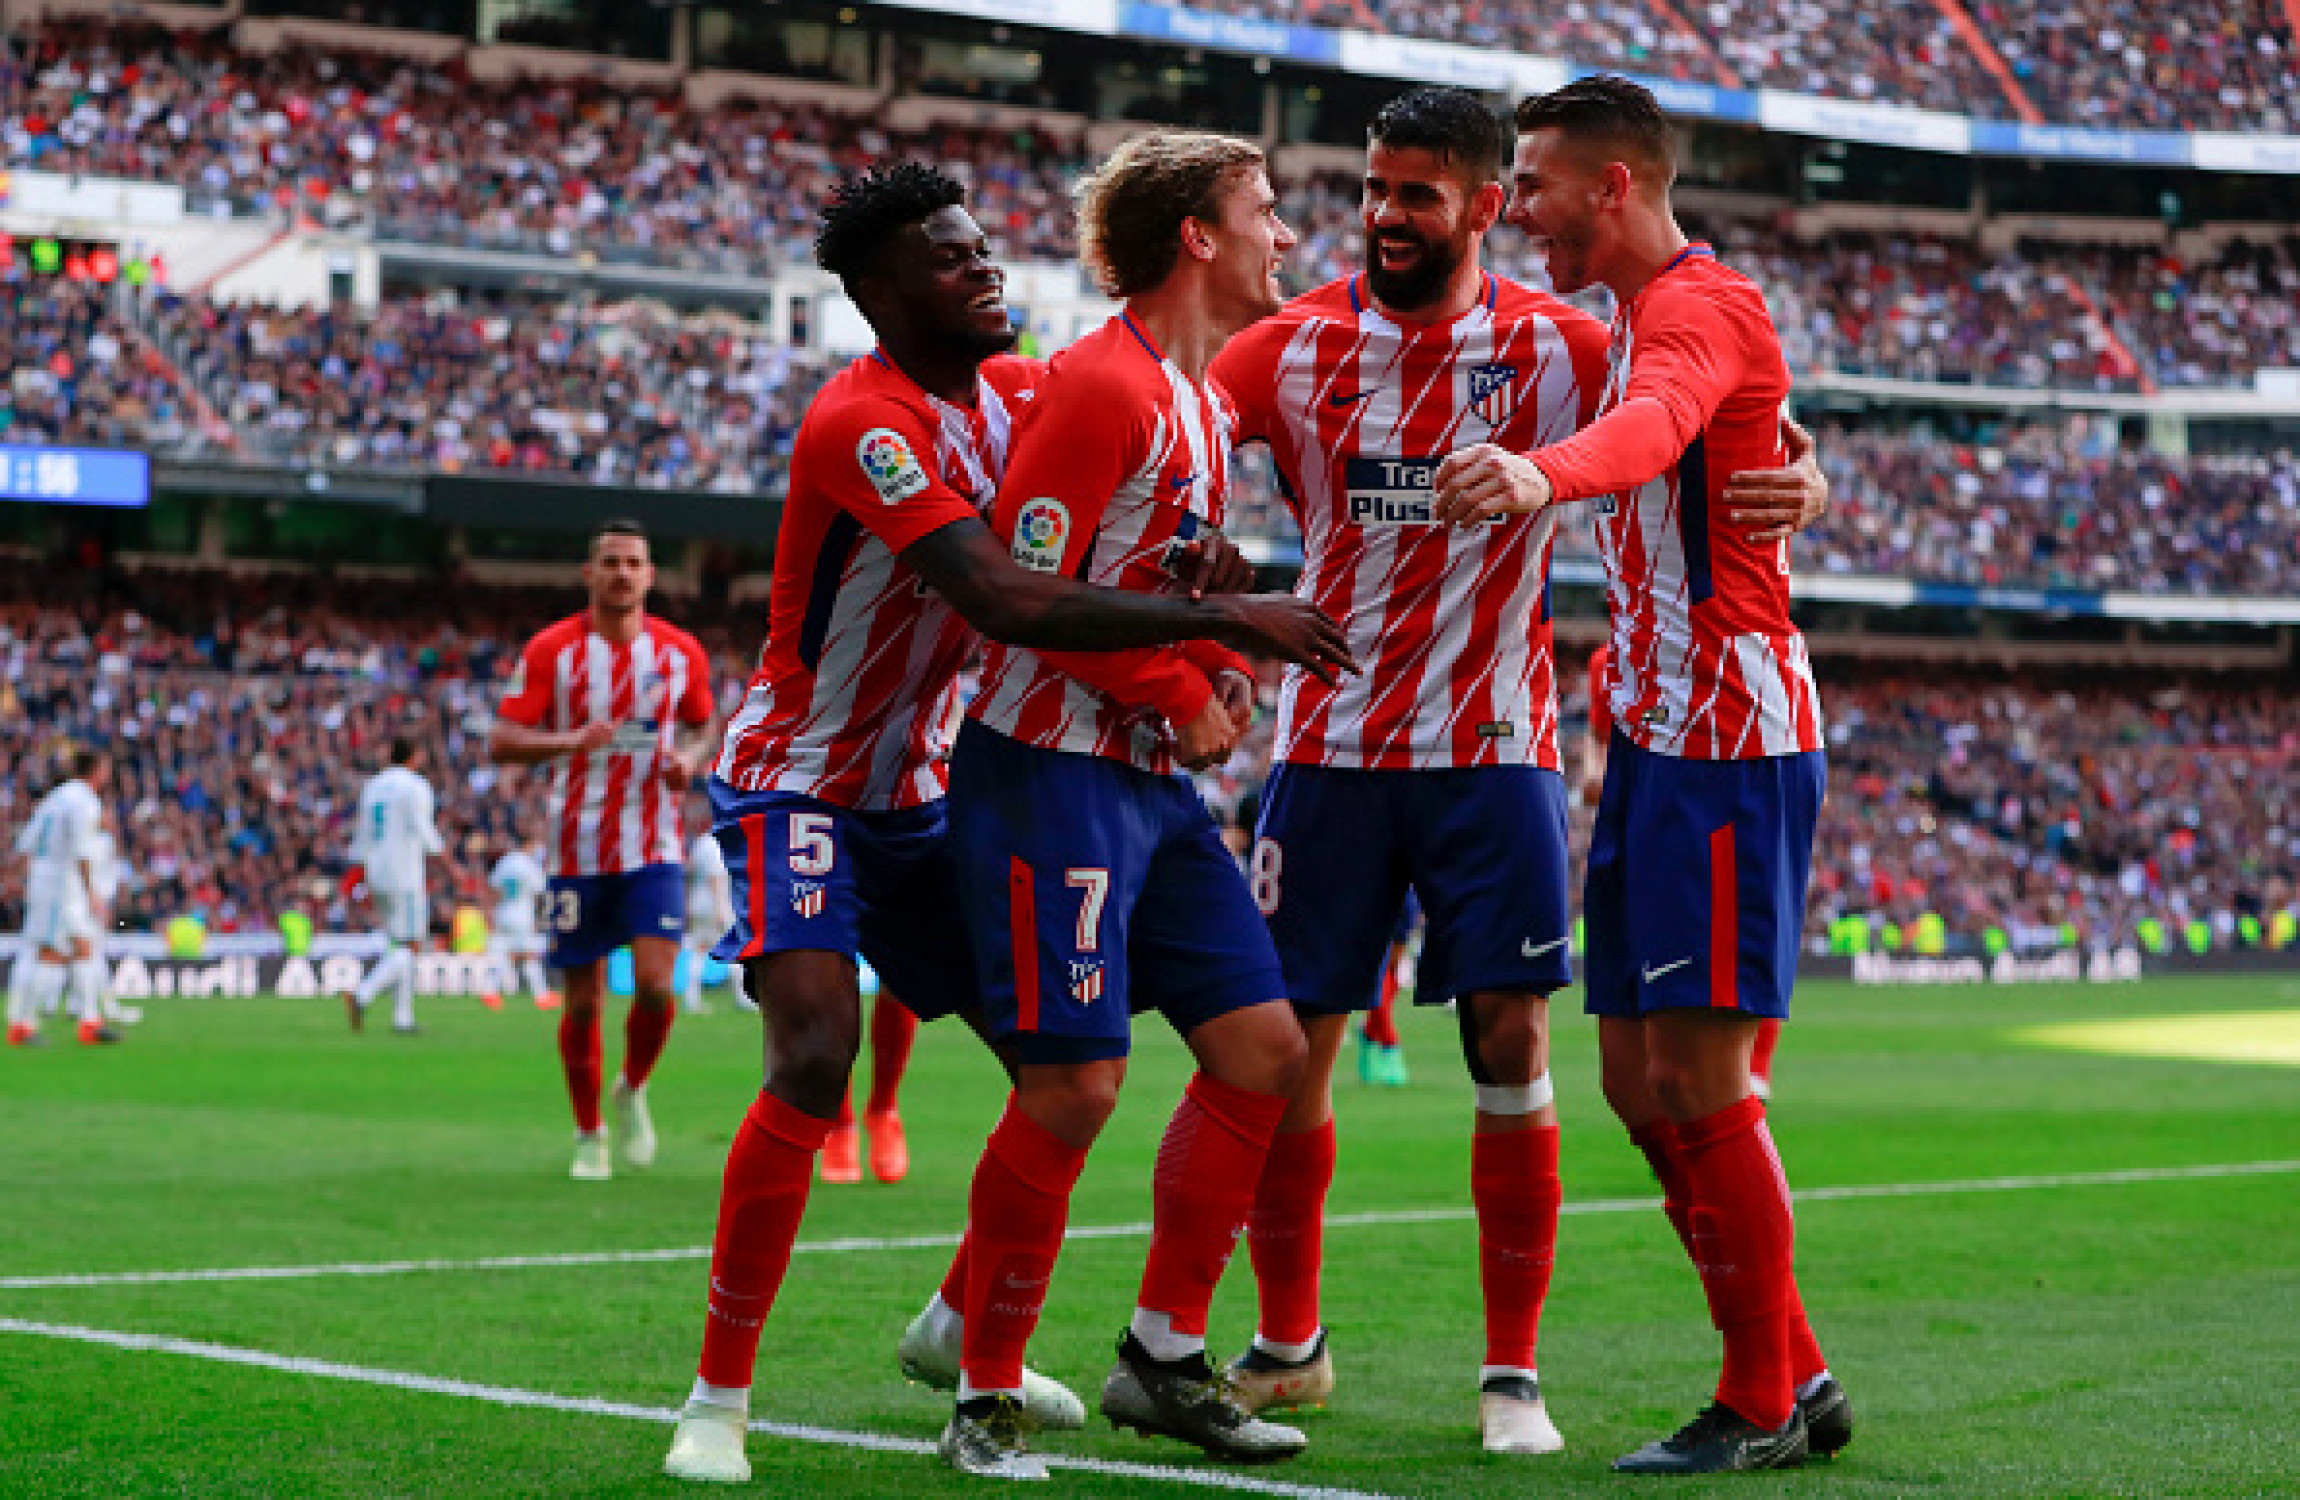 Atletico Madrid's Diego Simeone hails Antoine Griezmann after derby leveller